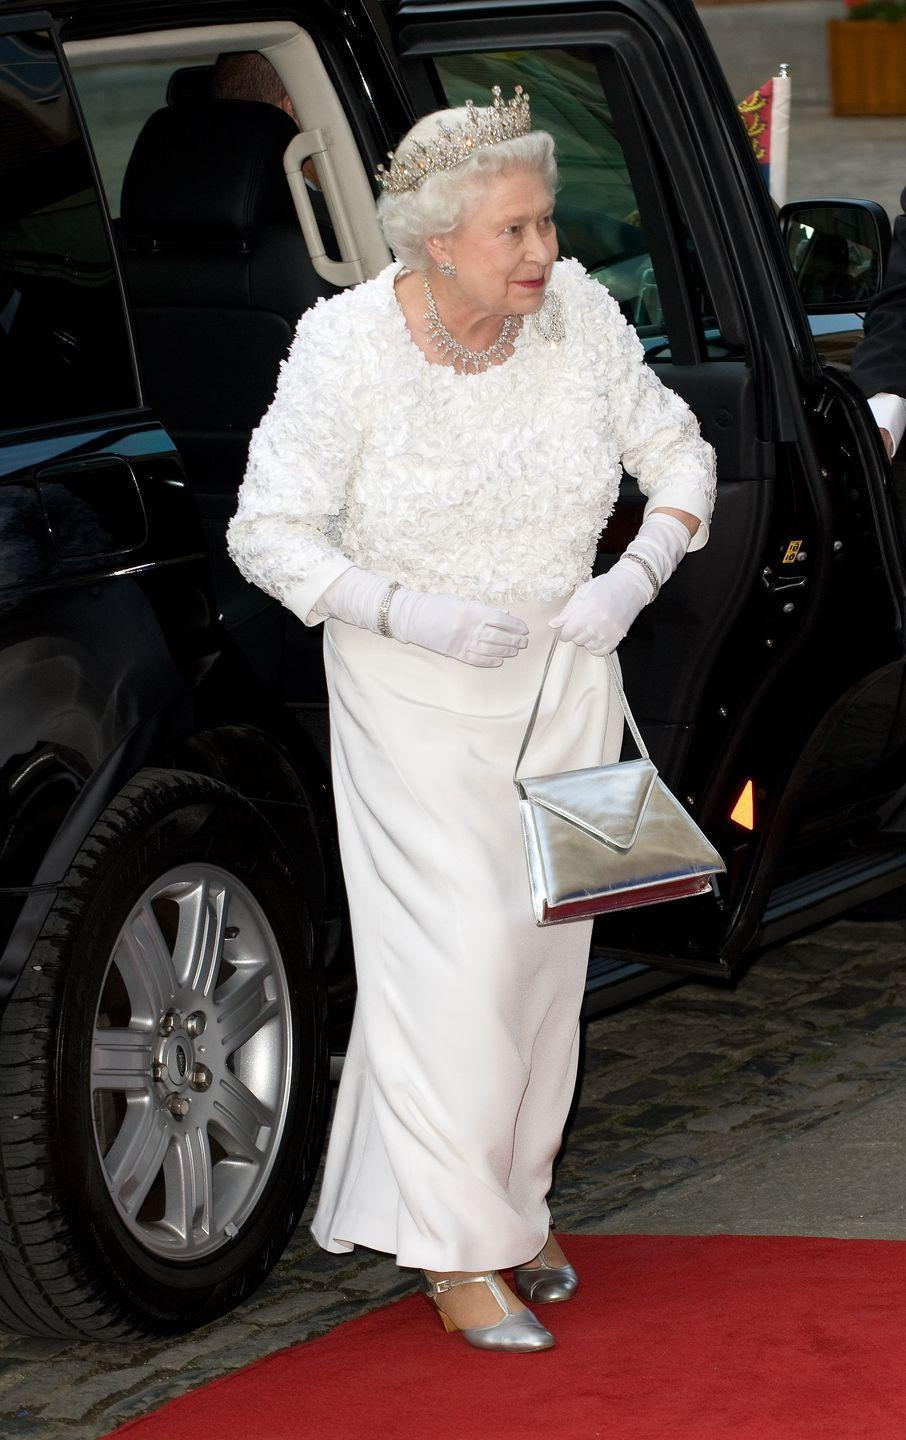 """<p>The Queen paid tribute to her host country while on a royal visit to Ireland. <a href=""""https://www.royalcollection.org.uk/collection/themes/exhibitions/fashioning-a-reign/windsor-castle/evening-dress-9?language=en"""" rel=""""nofollow noopener"""" target=""""_blank"""" data-ylk=""""slk:The white evening dress"""" class=""""link rapid-noclick-resp"""">The white evening dress</a> was embellished with chiffon shamrocks, the national emblem of Ireland.</p>"""